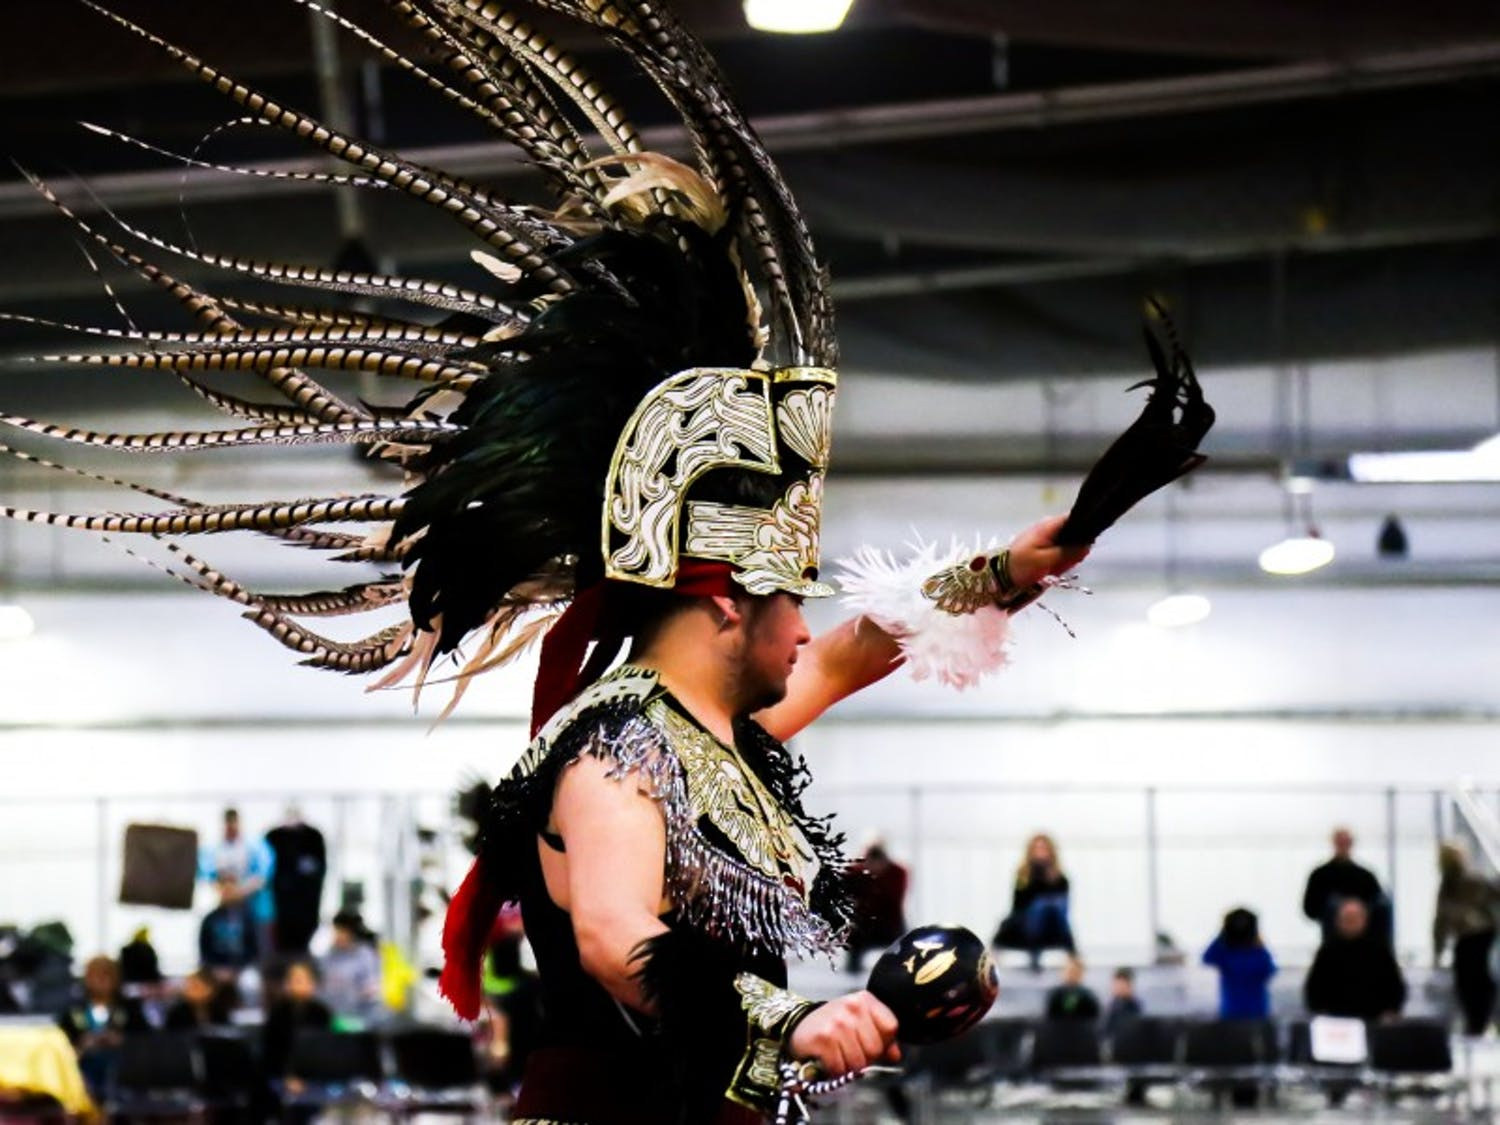 The 48th Annual Spring Powwow welcomed Native Americans from across the nation and members of the Madison community at the New Holland Pavilion over the weekend.